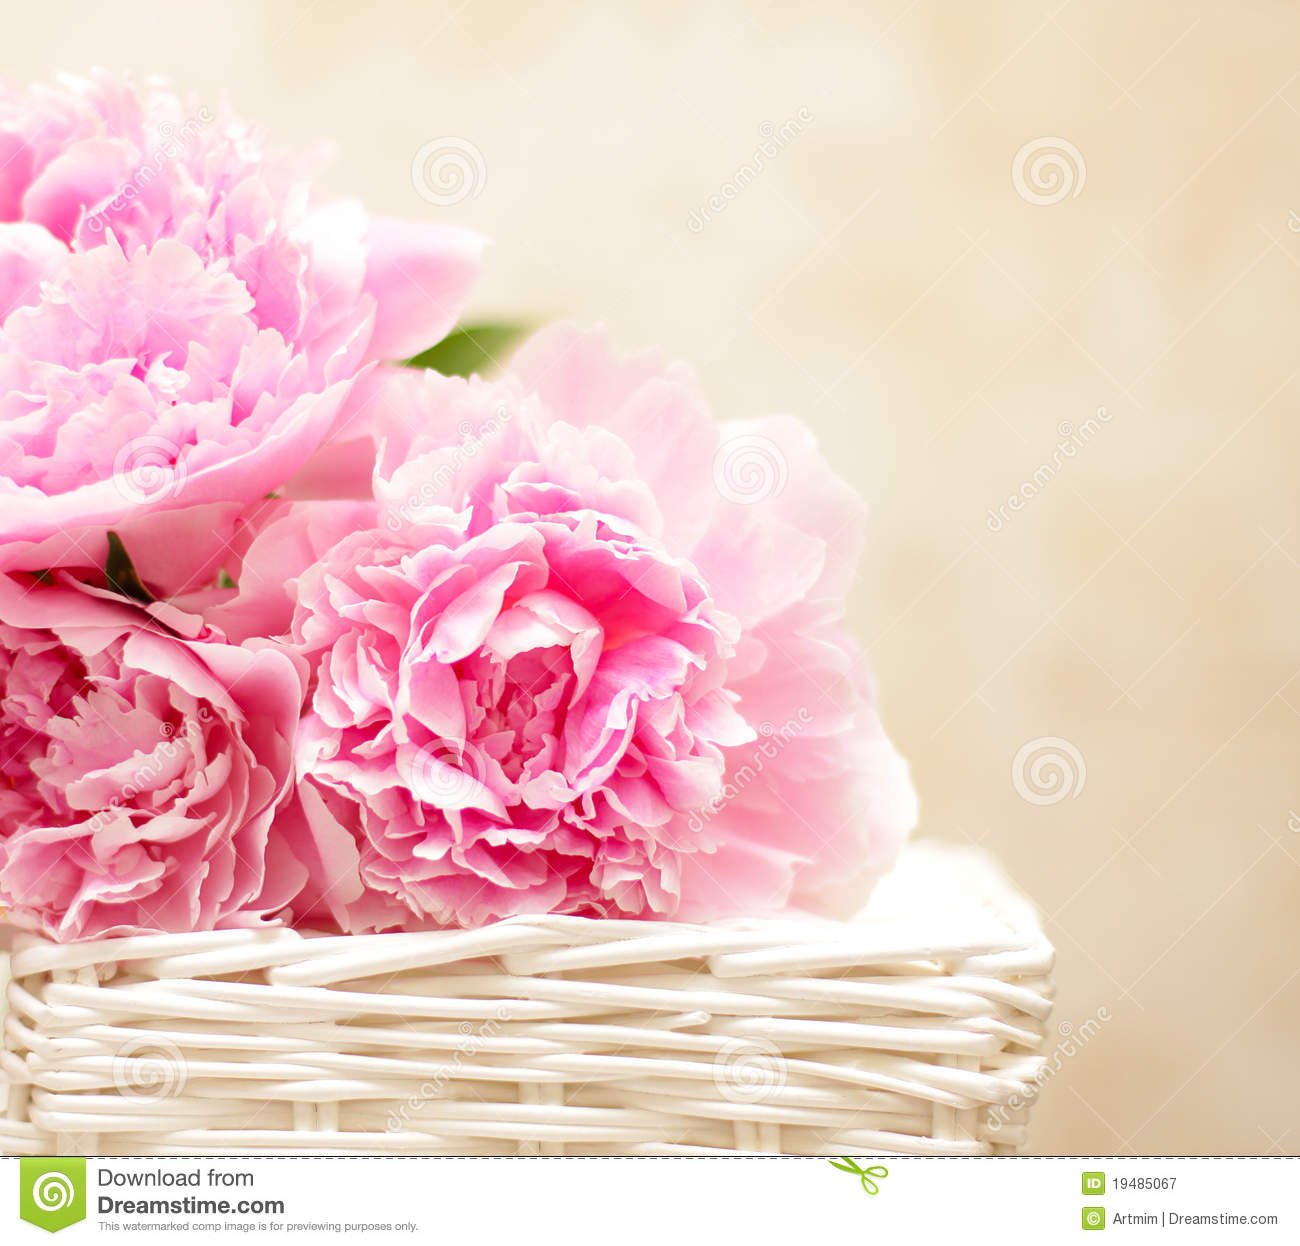 ... In Victorian Style Royalty Free Stock Photography - Image: 19485067: www.dreamstime.com/royalty-free-stock-photography-peony-flowers...